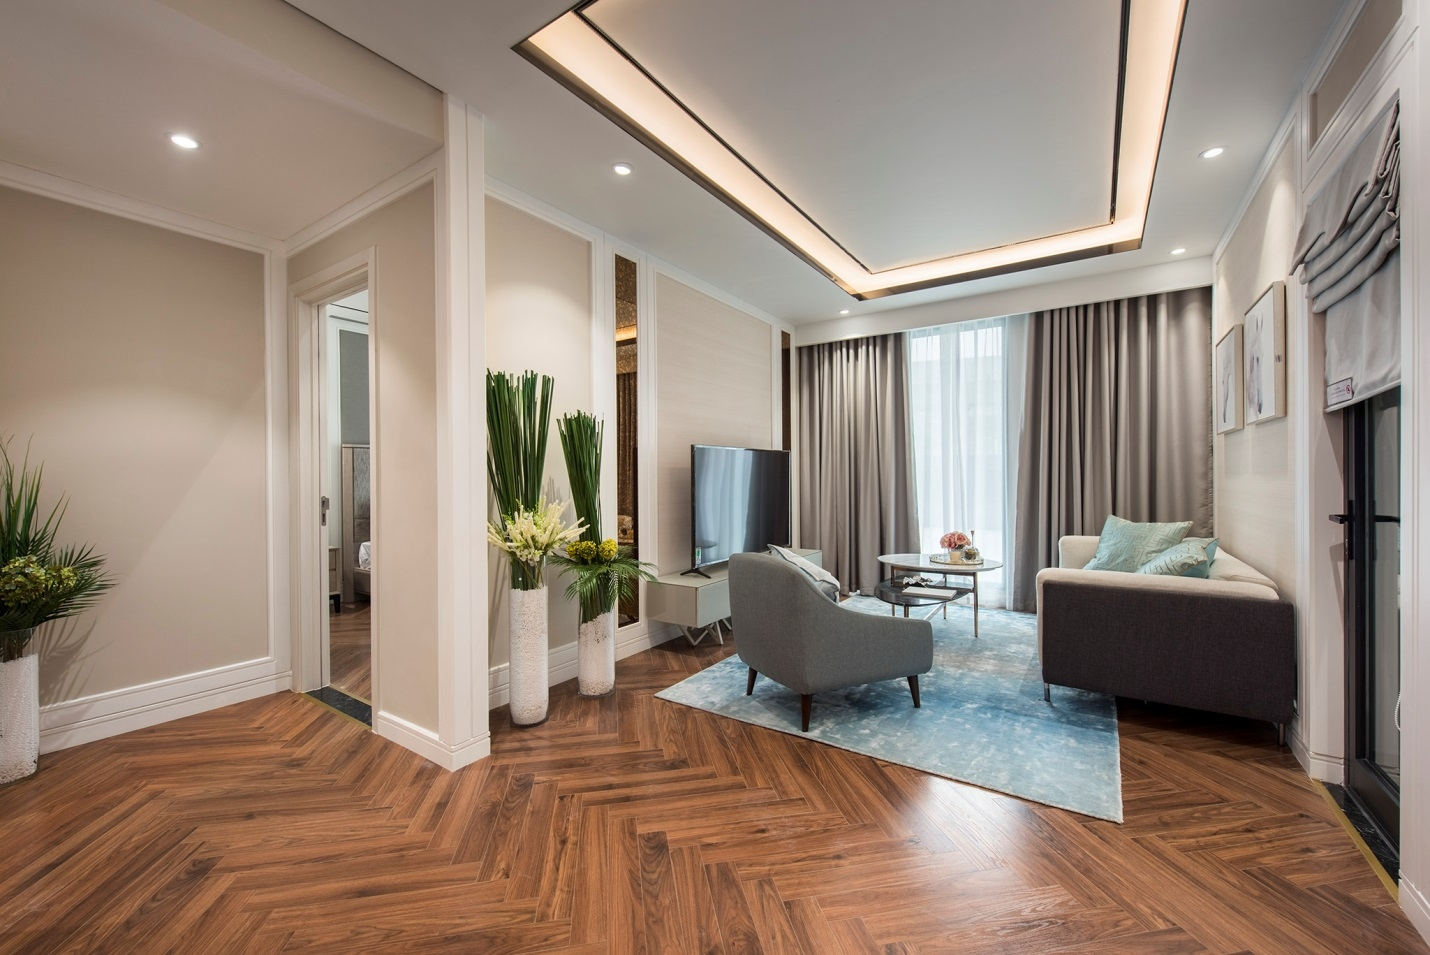 Apartment feng shui for owners of the West Quartet